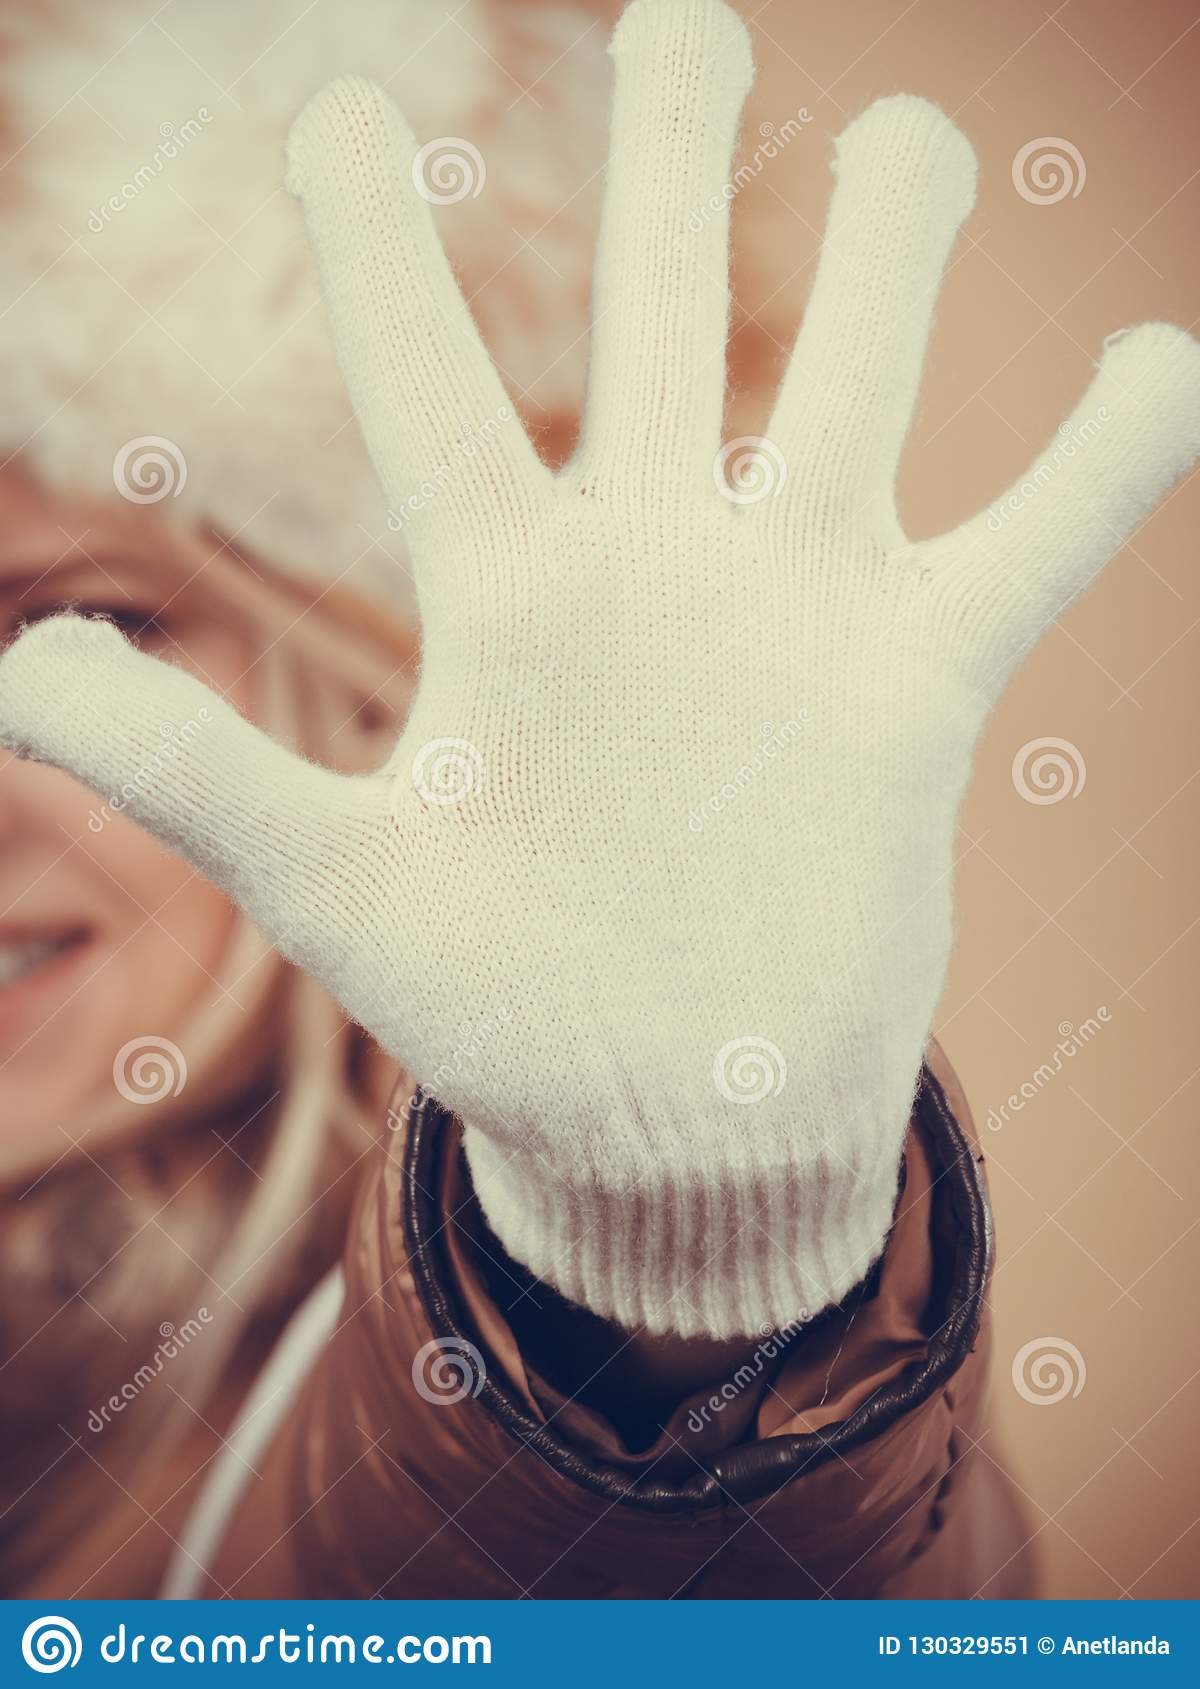 8202c565c8642 Clothing accessories, seasonal clothes concept. Woman wearing jacket, winter  furry warm hat and white gloves gesturing with hands. More similar stock  images